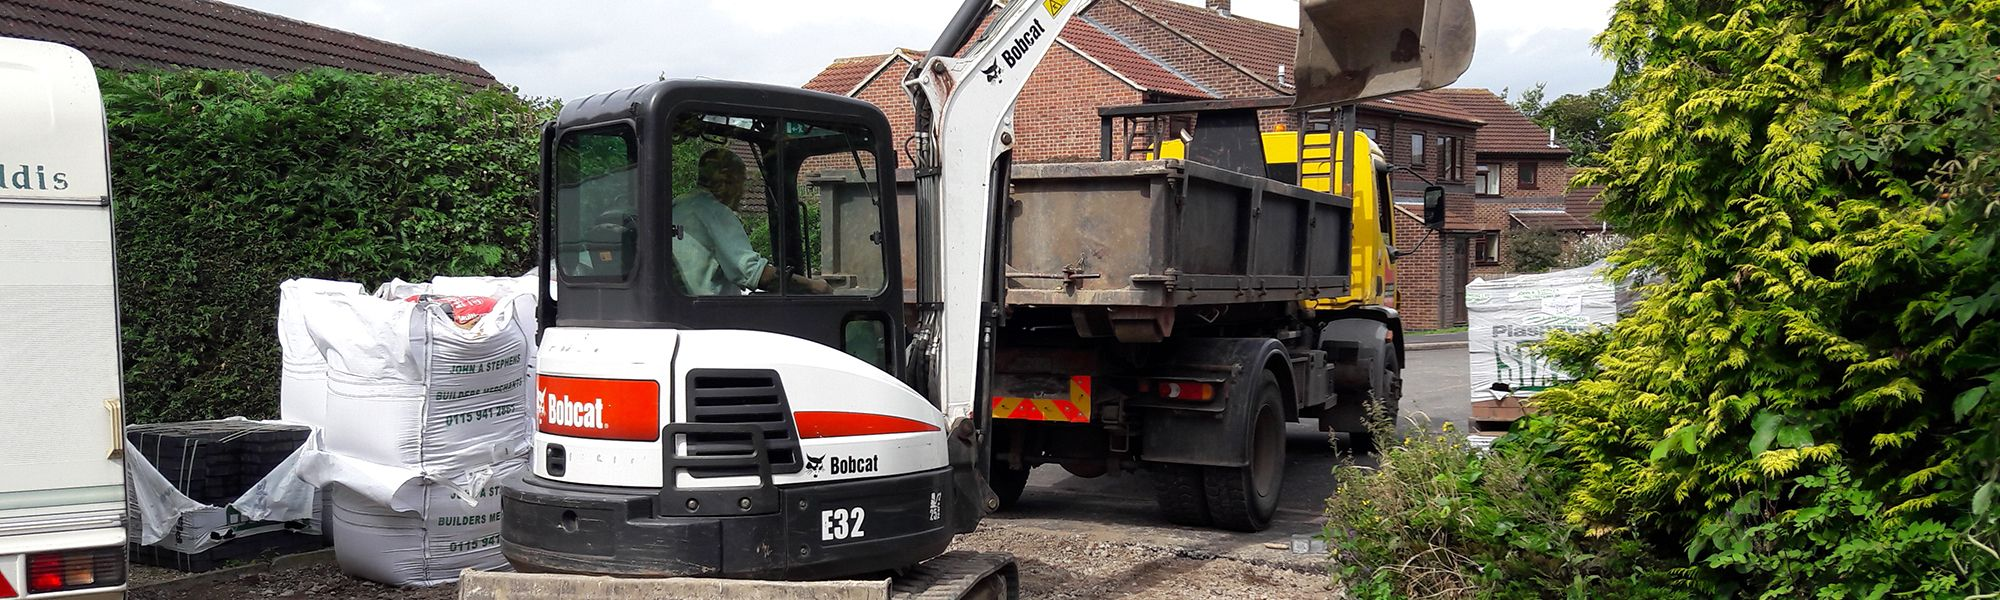 Digger & Lorry Hire Nottingham